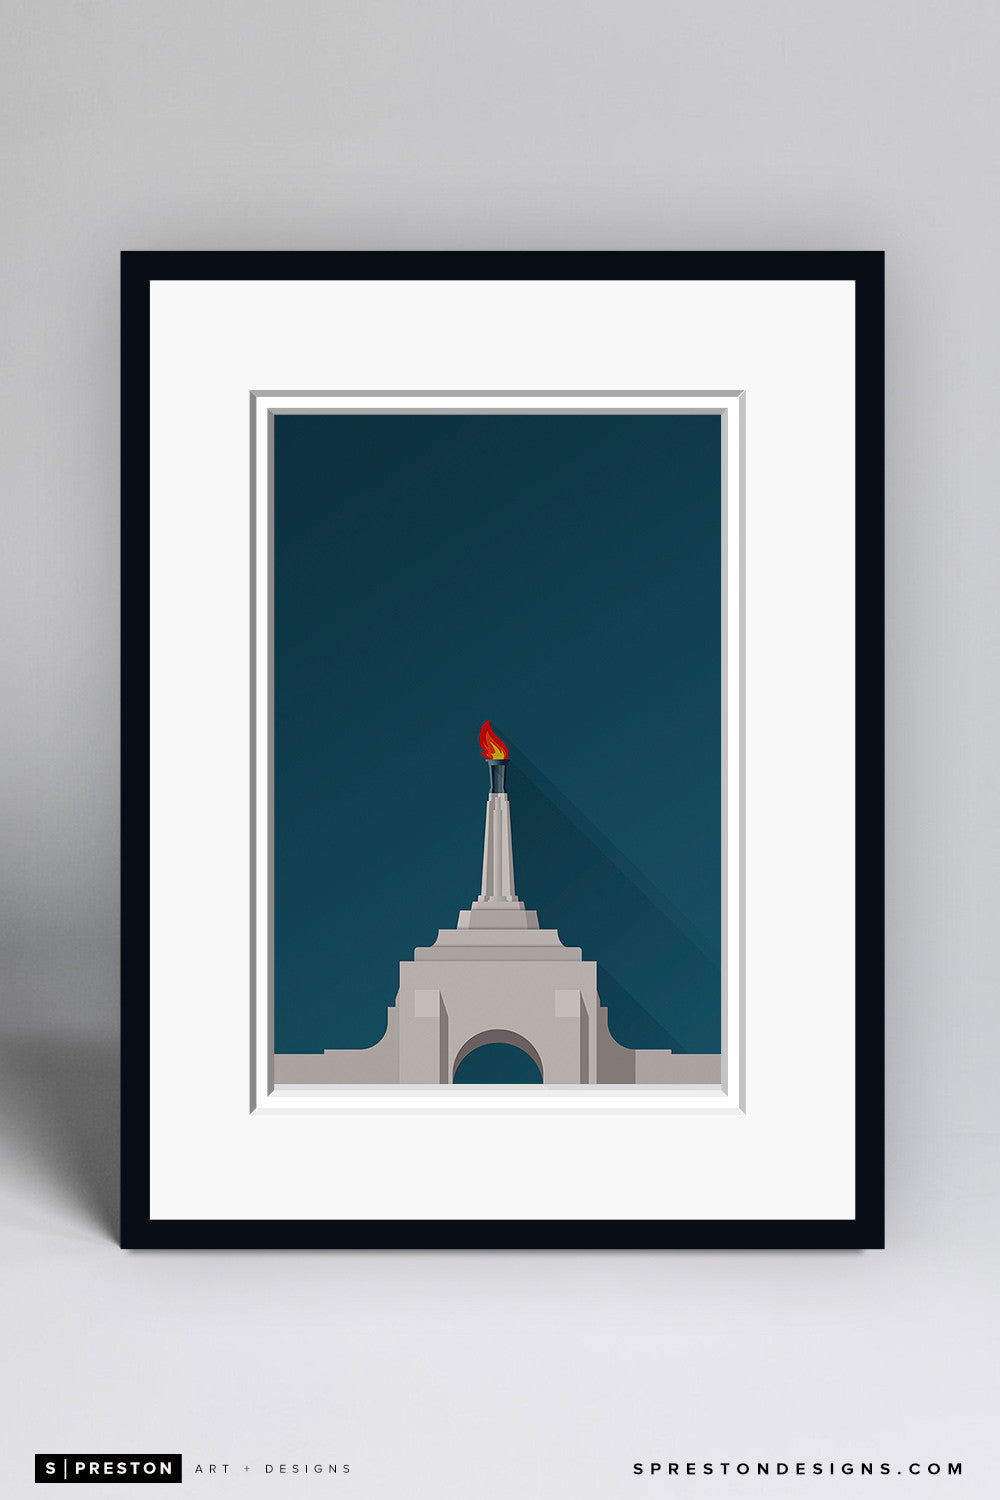 Minimalist LA Memorial Coliseum Art Print - USC - S. Preston Art + Designs